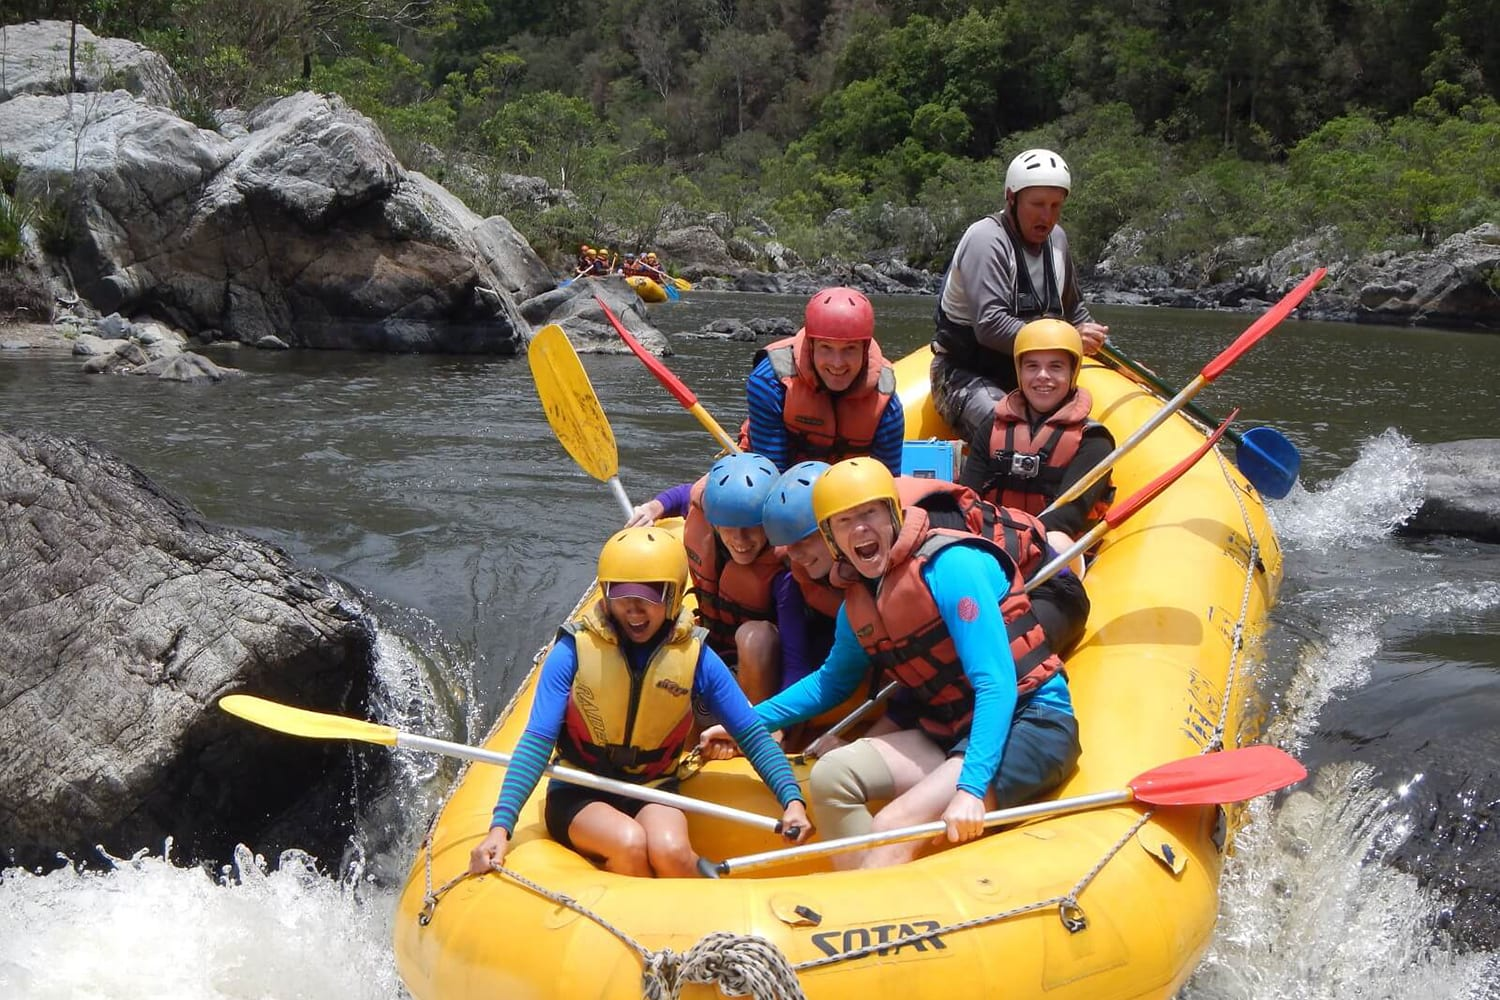 Whitewater Rafting Day Trip - Upper Nymboida River, NSW